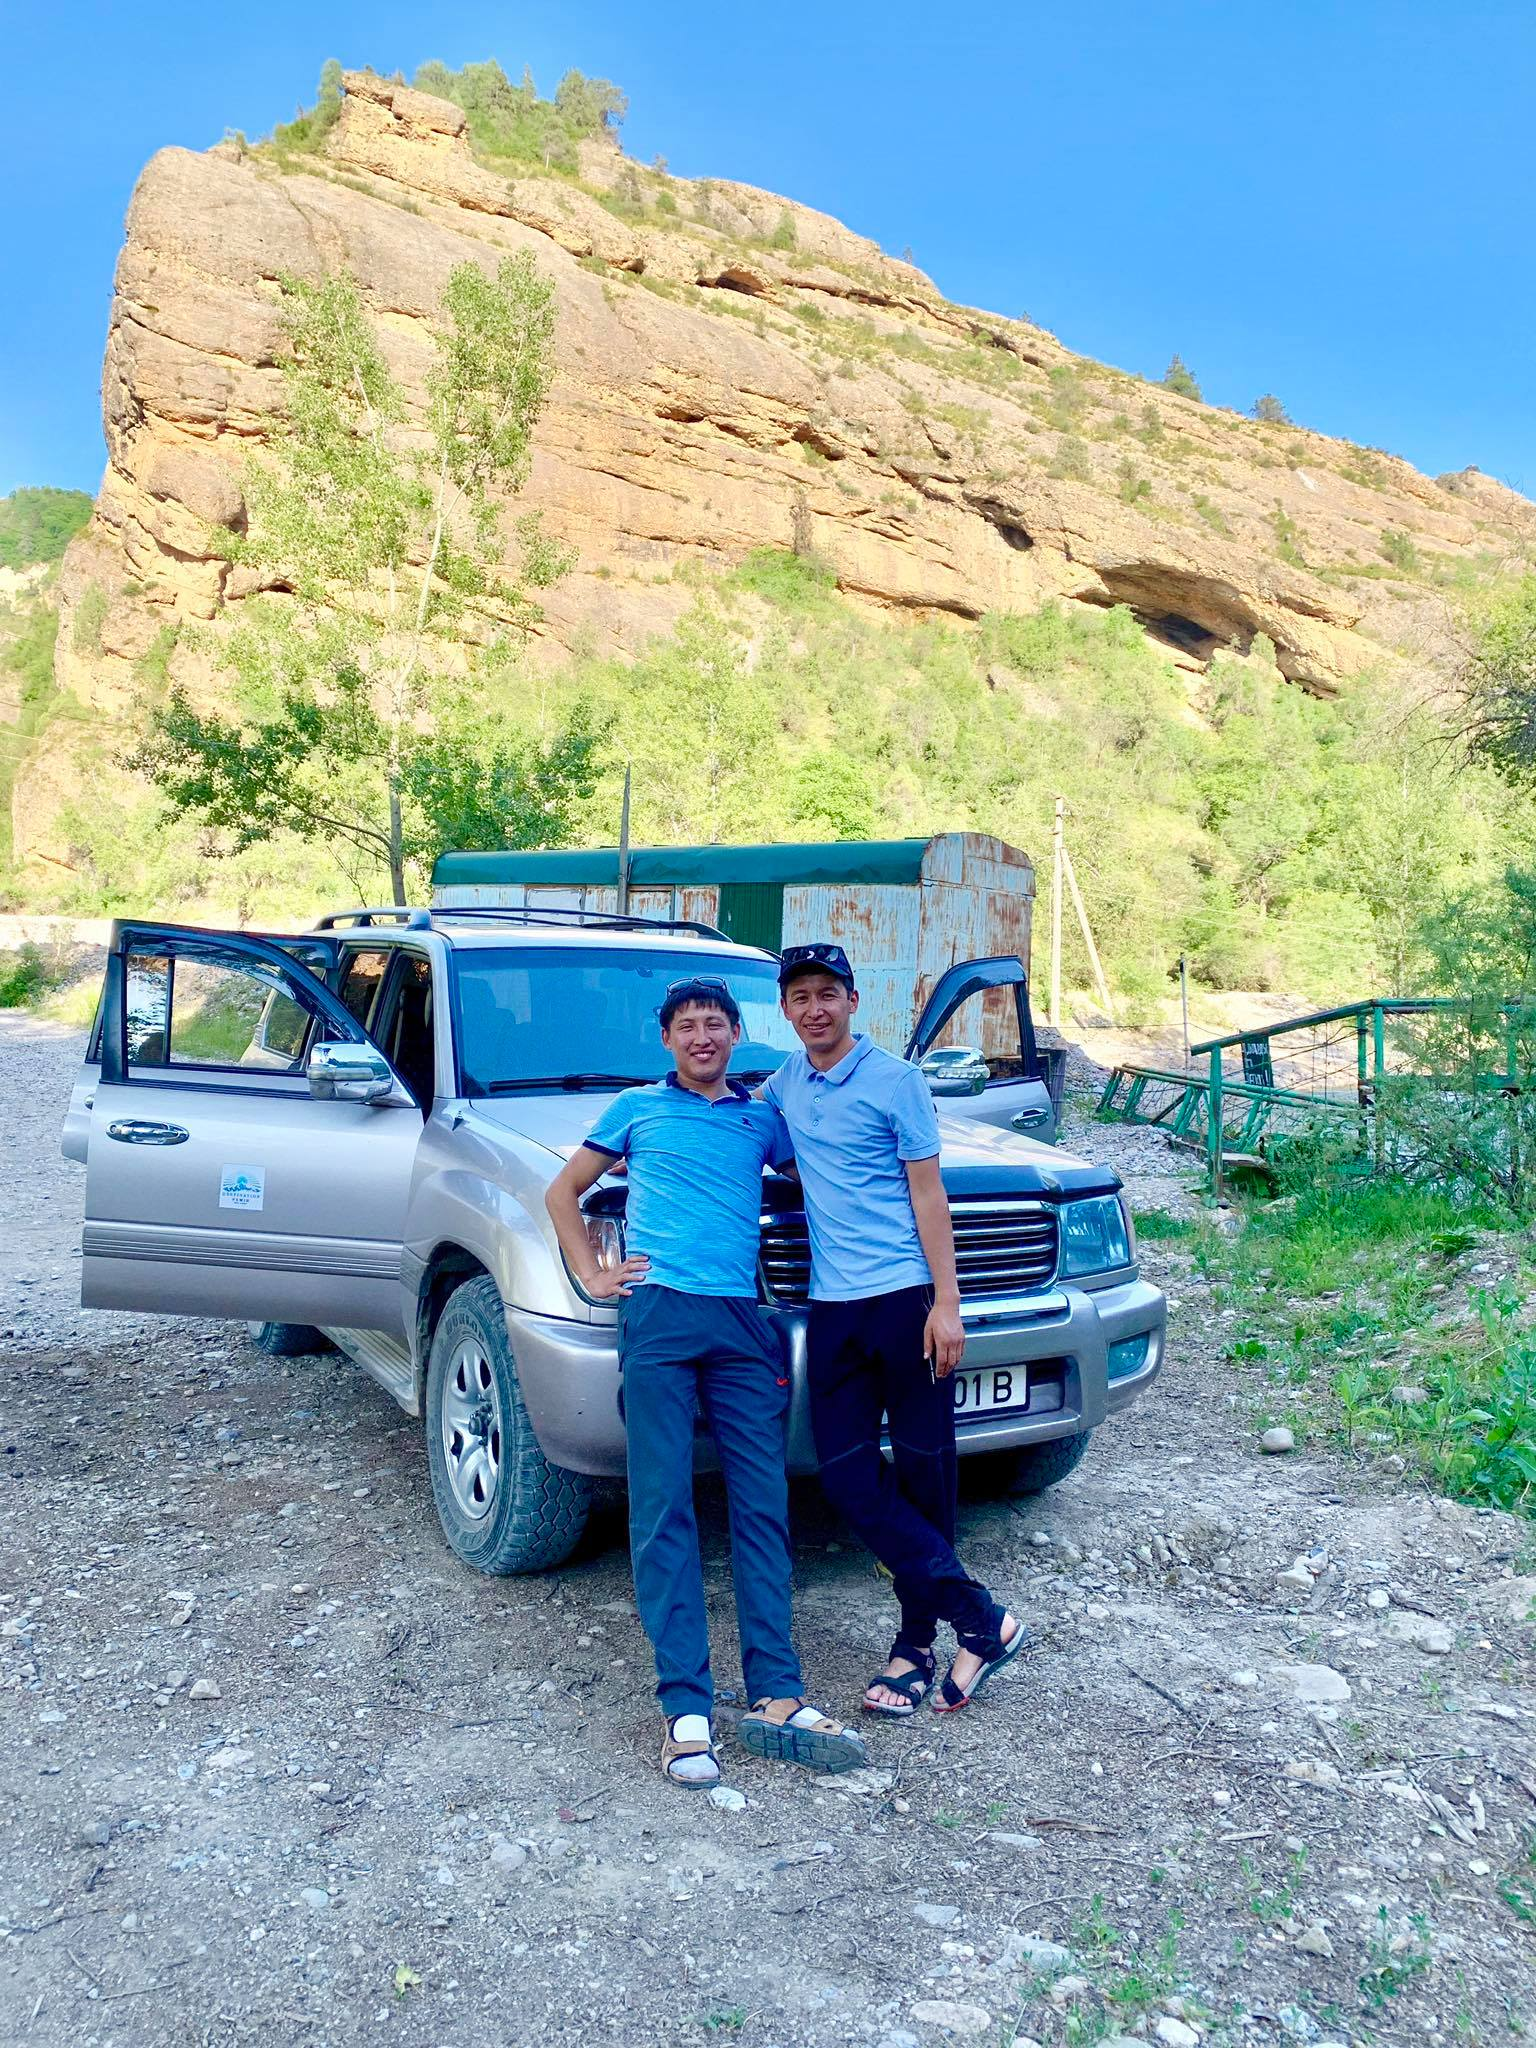 Kach Solo Travels in 2019 Roadtrip to Sary Chelek Lake which is 330 km. from Osh, Kyrgyzstan16.jpg